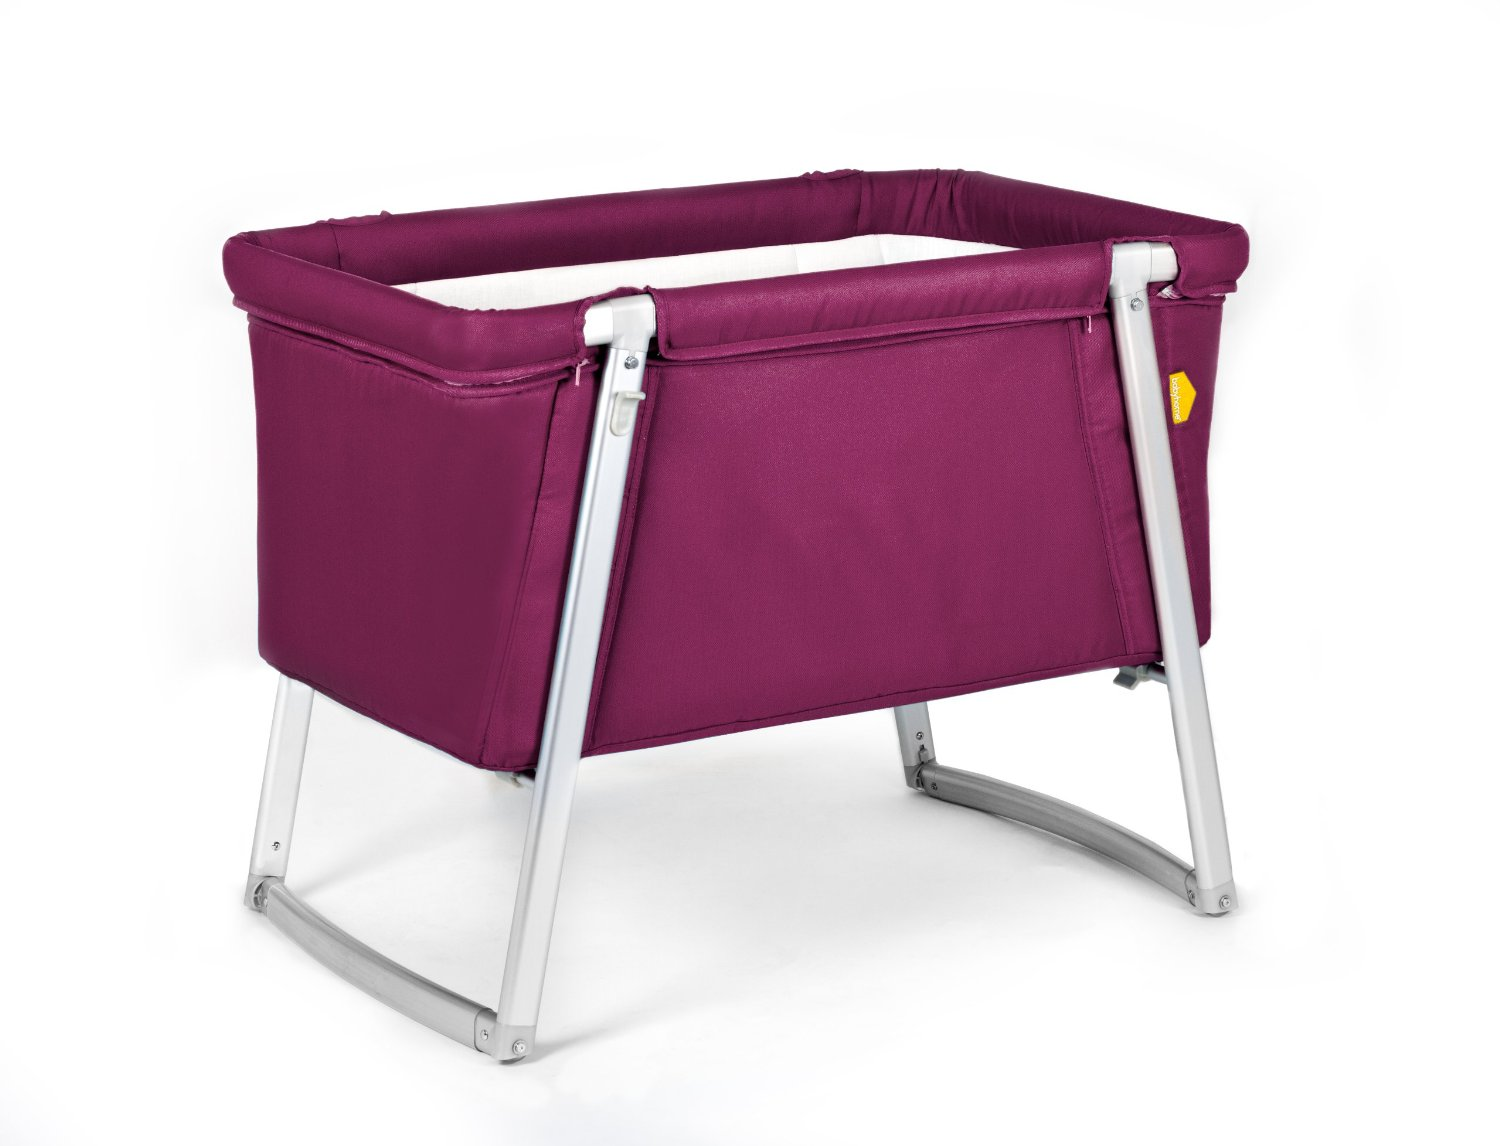 Travel cribs for babies great for kids Portable bassinet